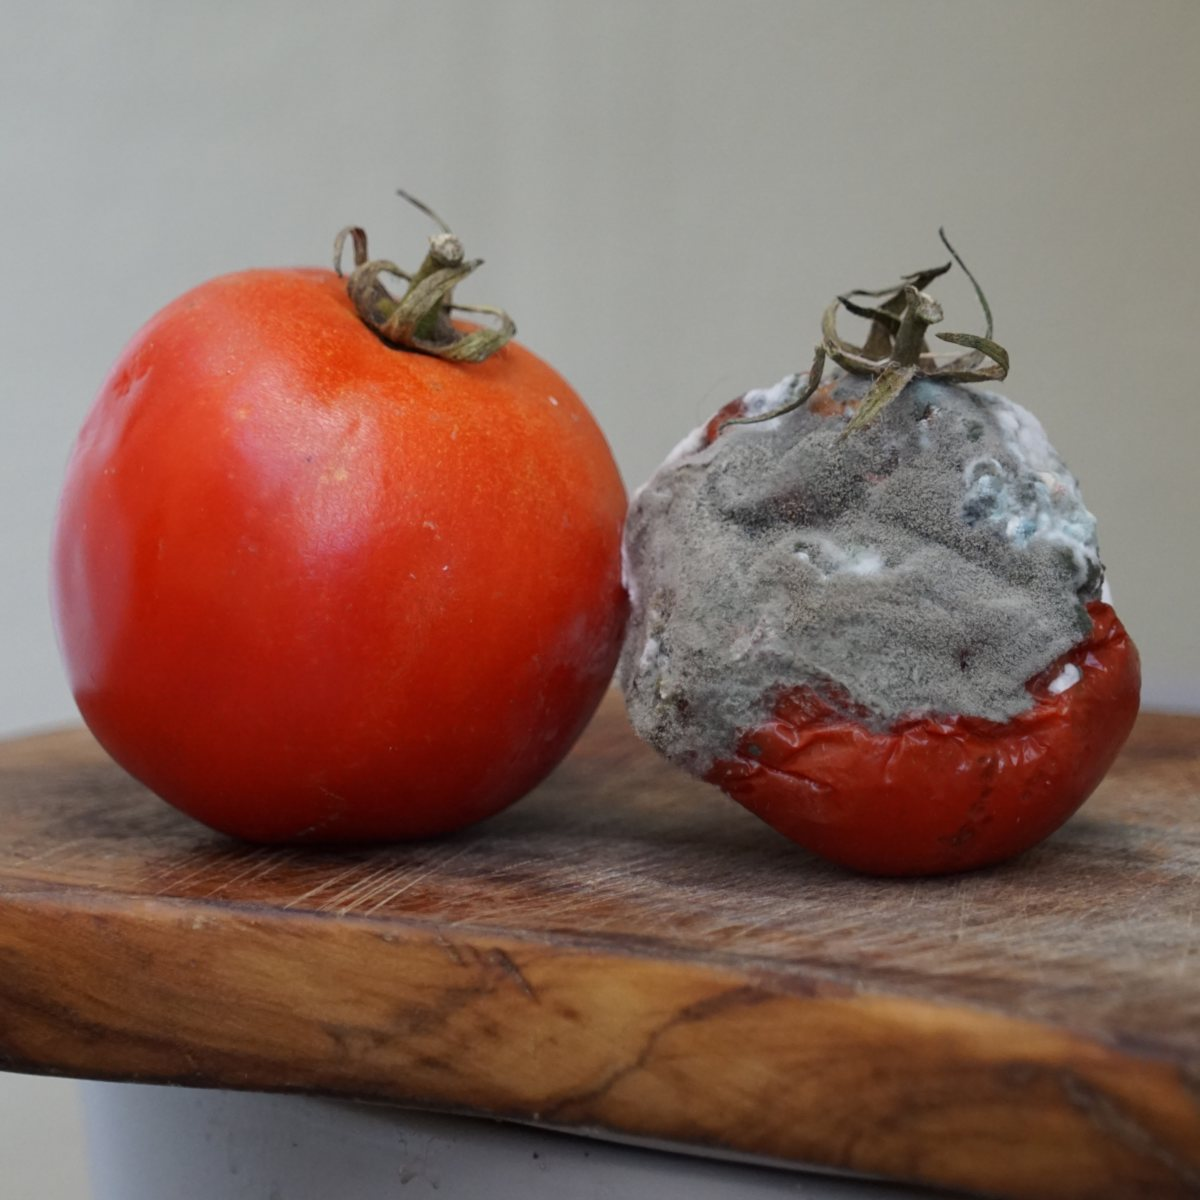 Moldy tomato next to a healthy one.